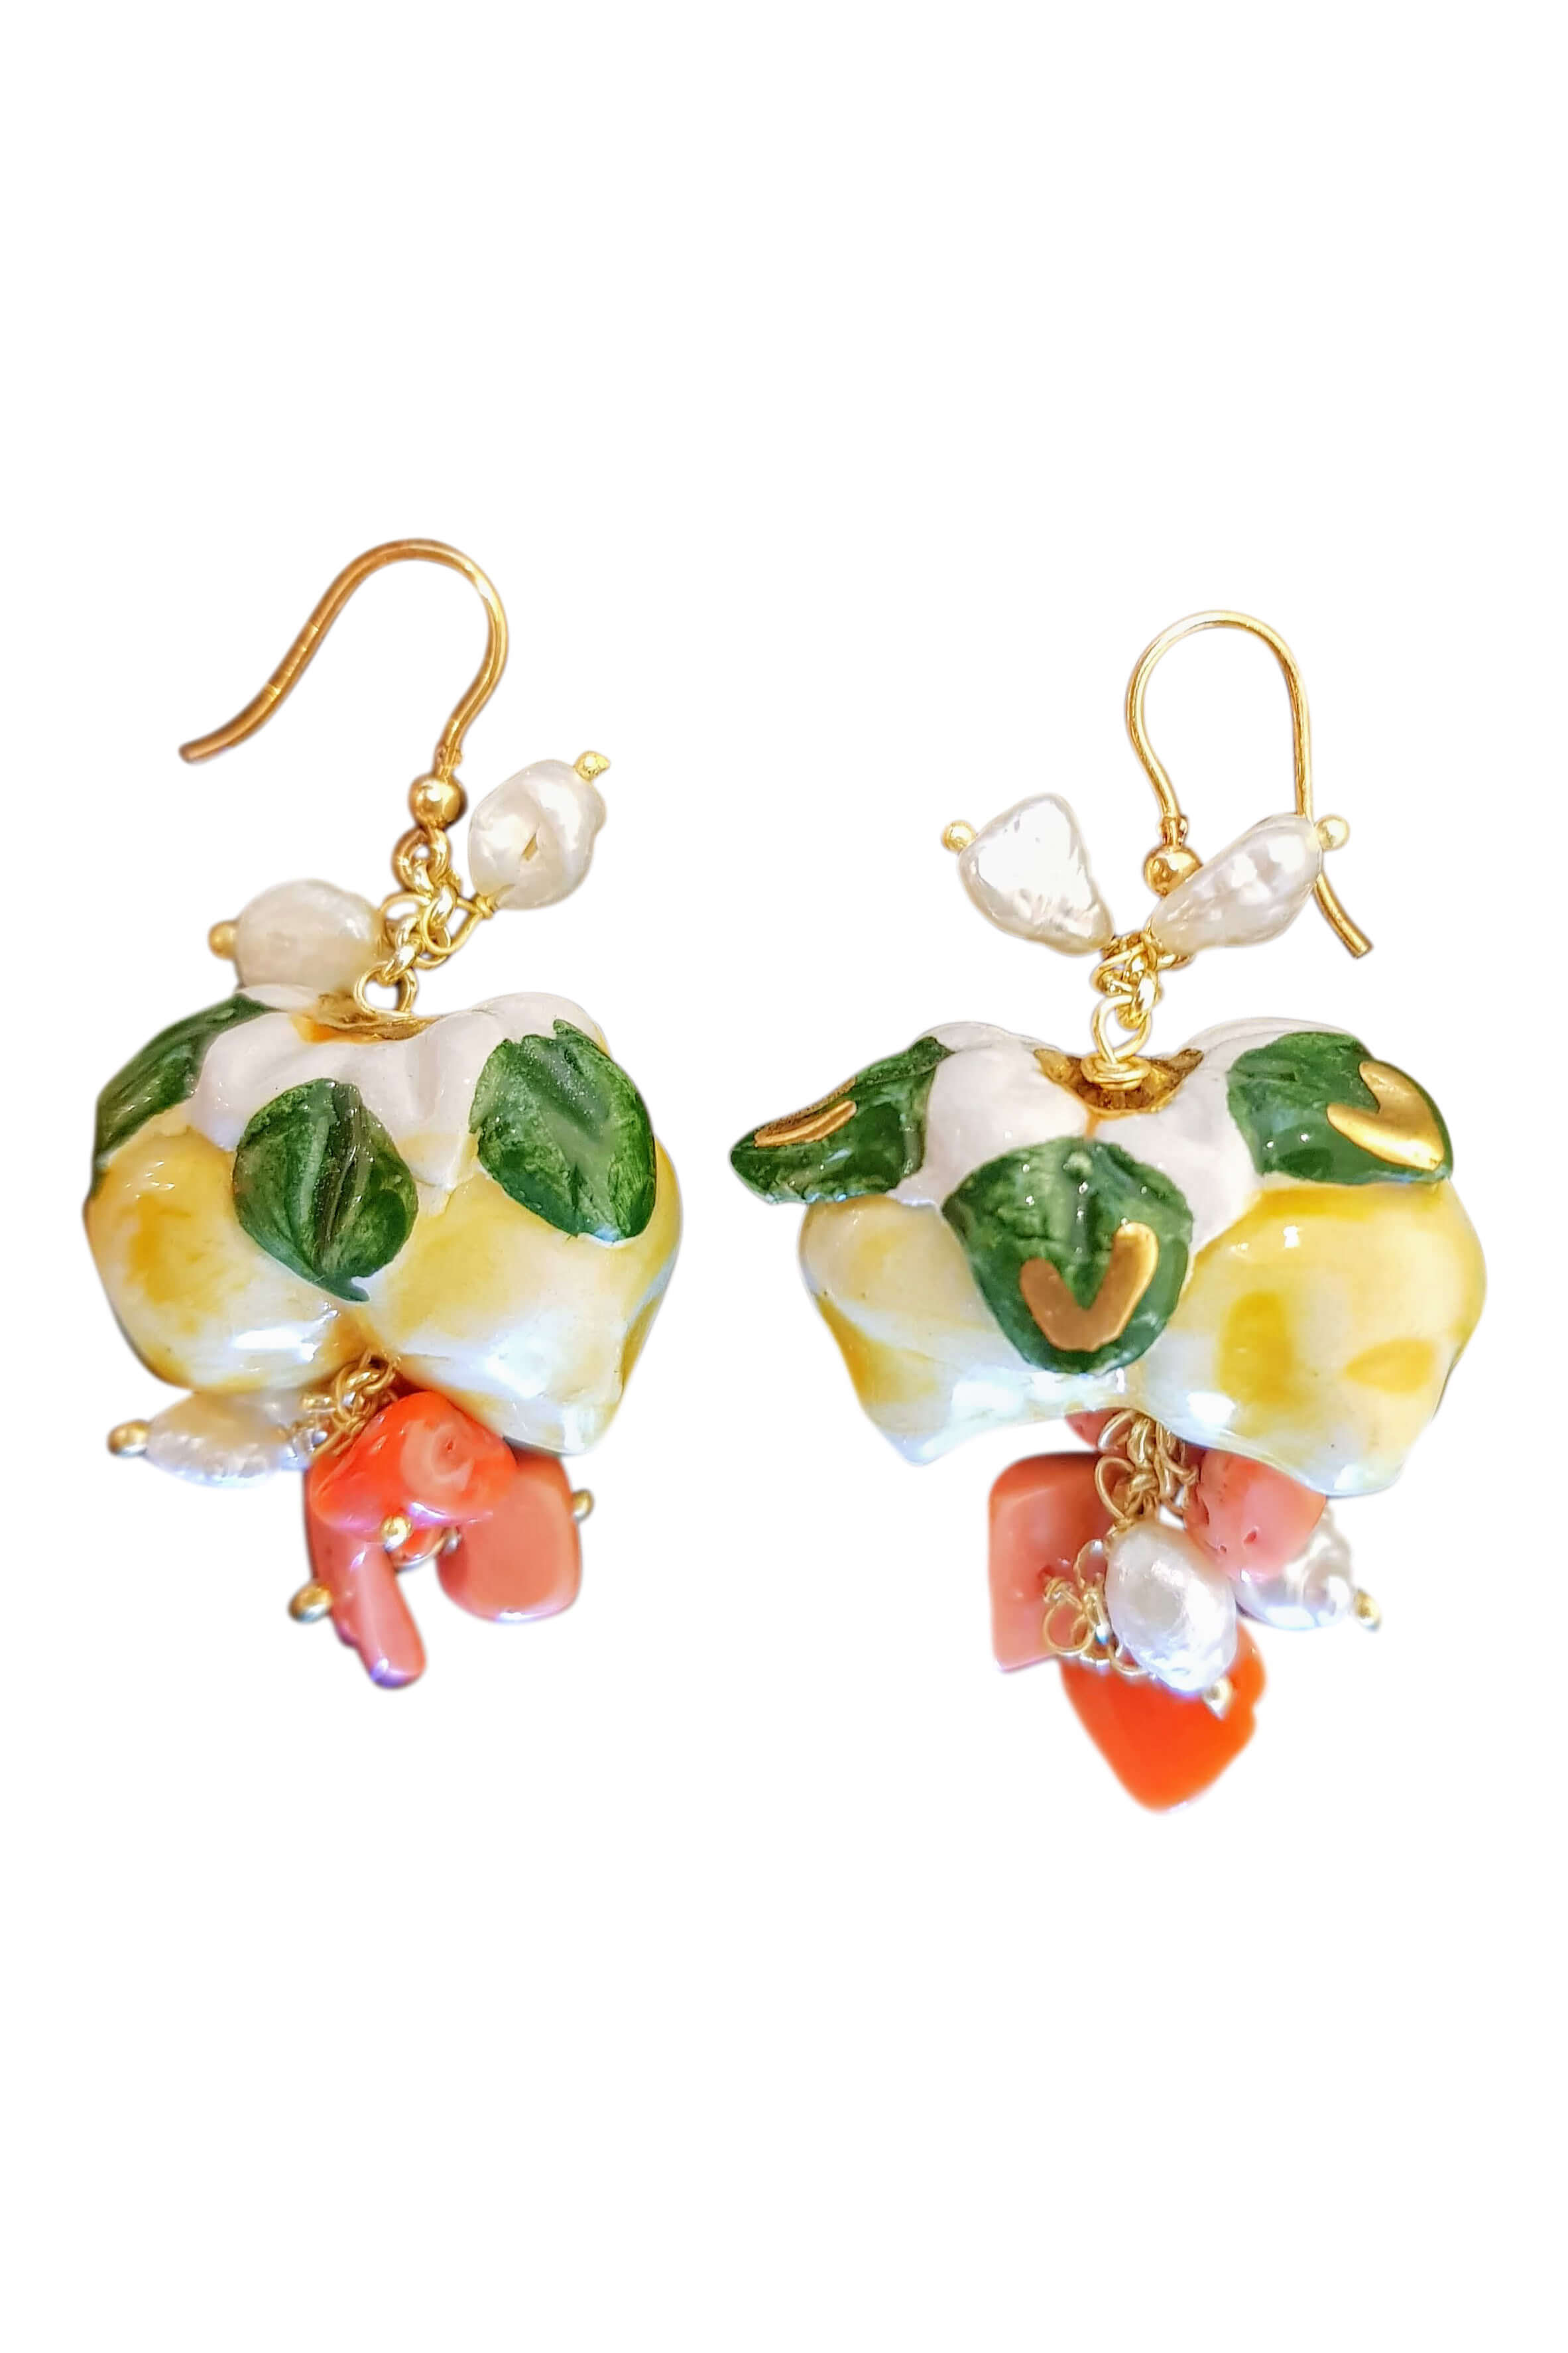 earrings with pearls, corals and lemons in painted ceramics MINORI